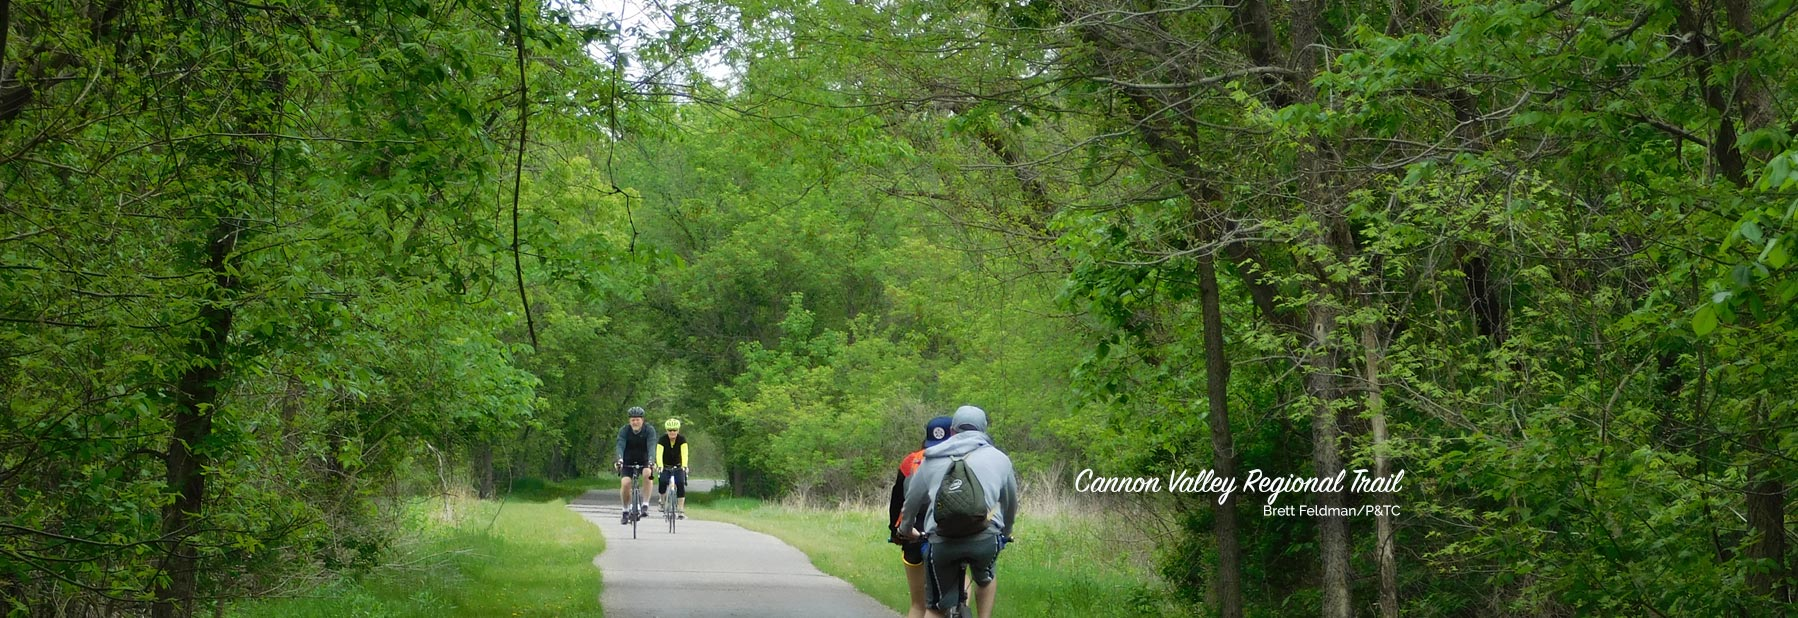 Bicyclists on the Cannon Valley Regional Trail